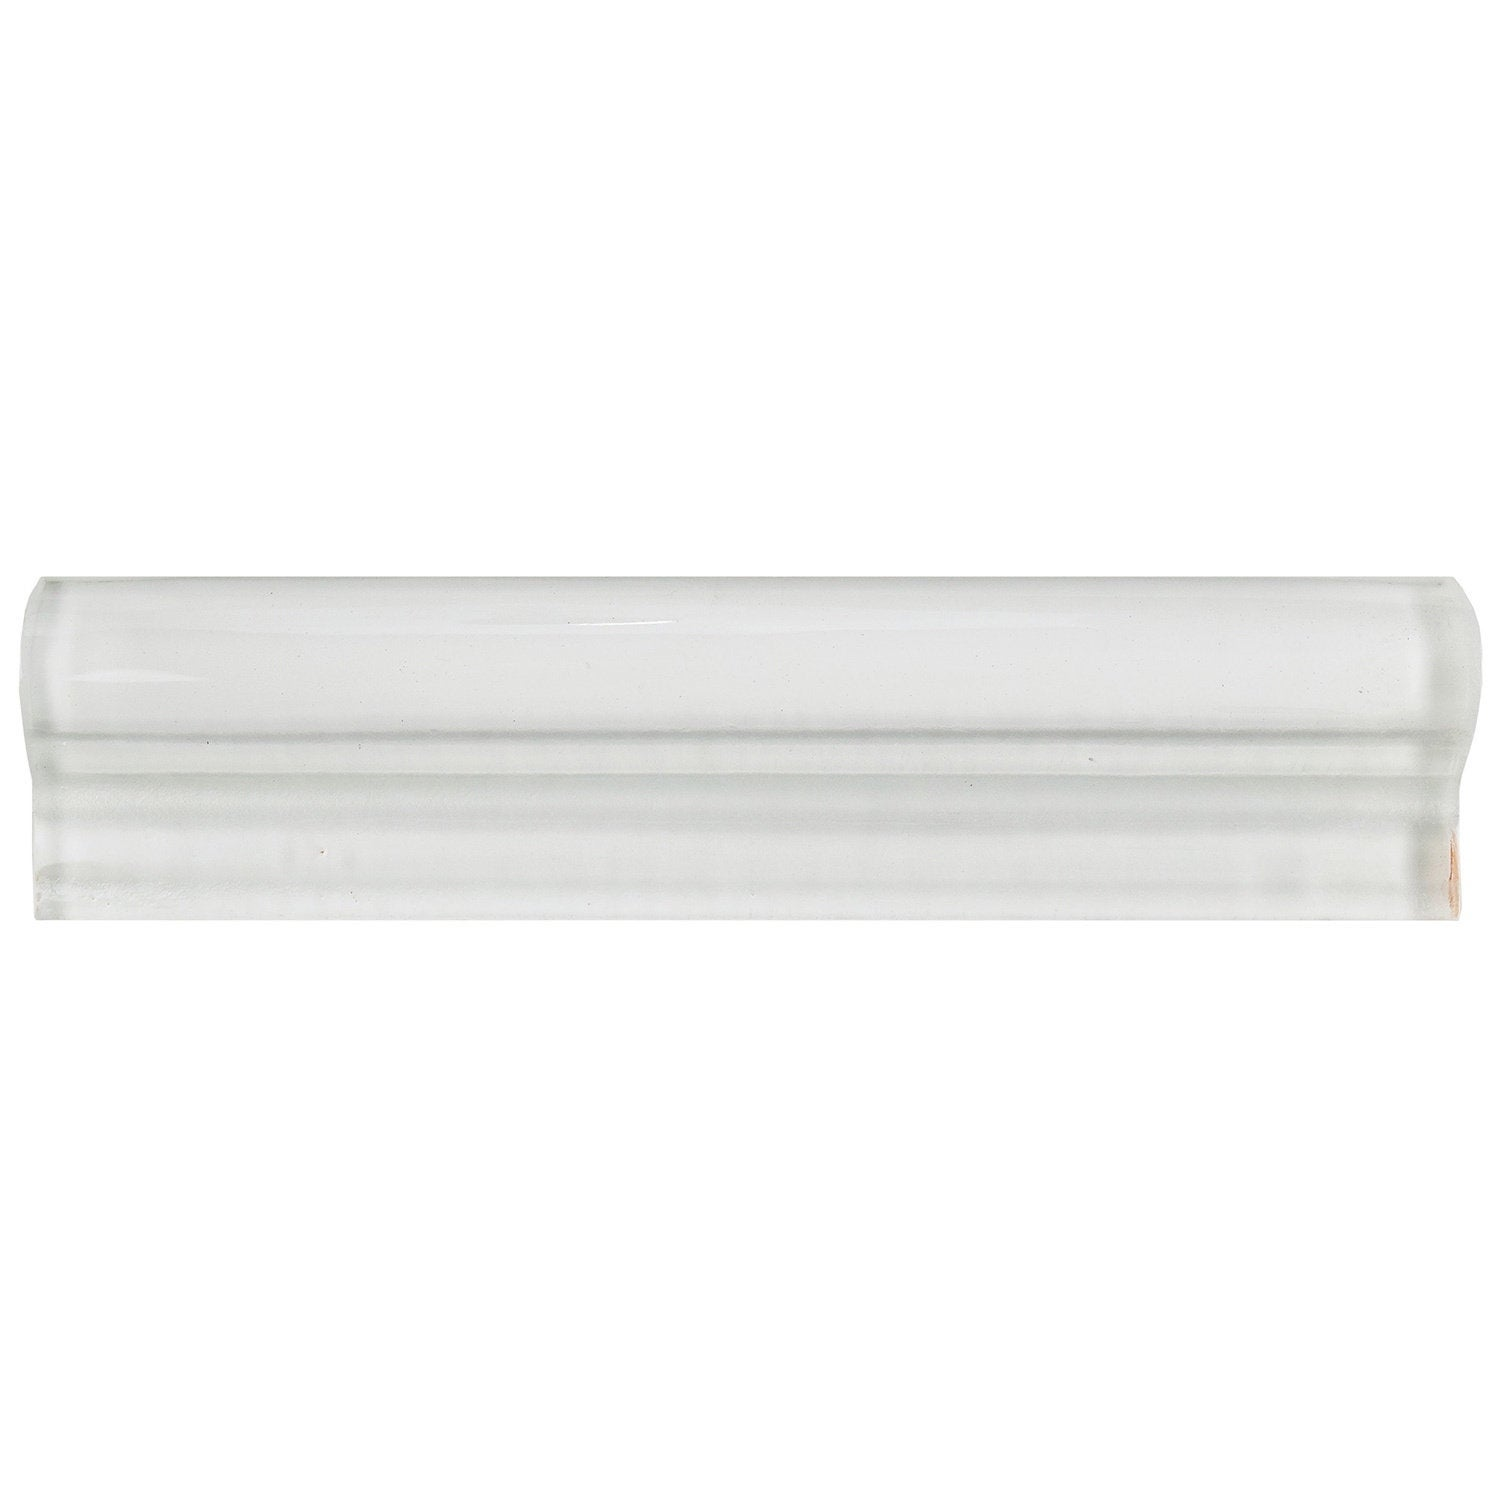 SomerTile 9.9x9.9-inch Reflections Ice White Glass Chair Rail Trim Tile  (90 tiles)